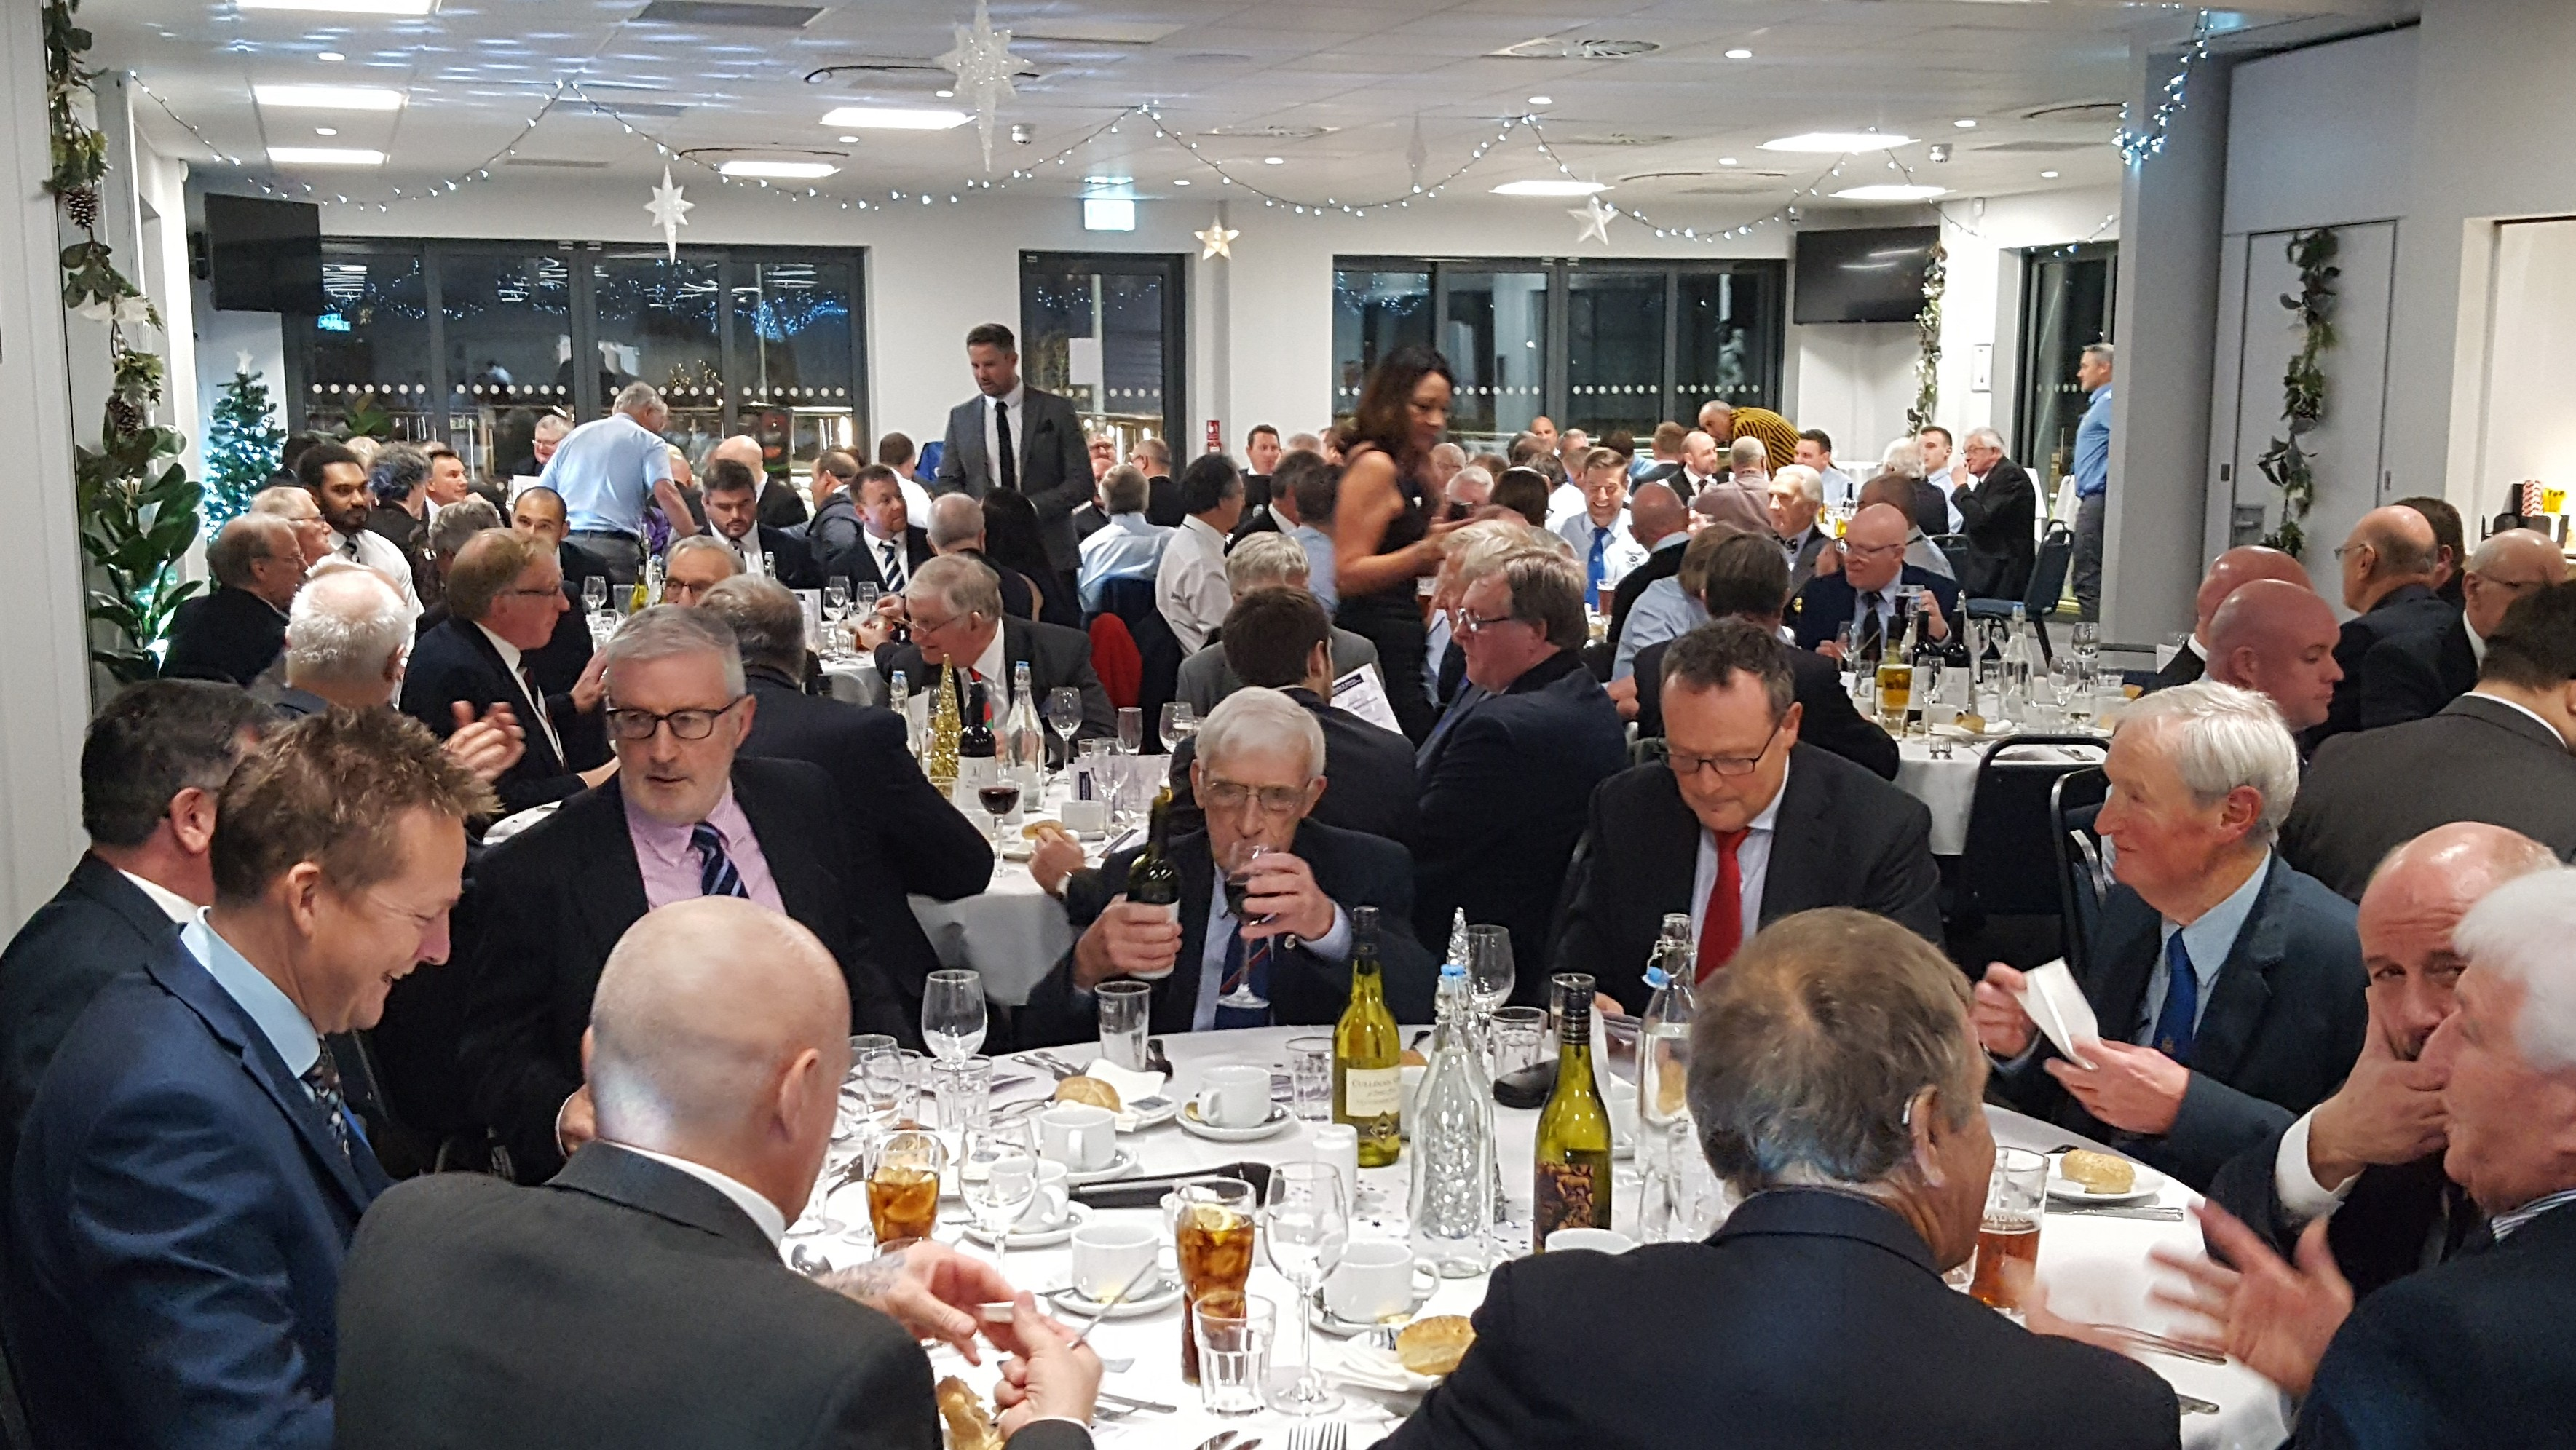 Bristol Combination Rugby hold gala dinner at Lockleaze Sports Centre